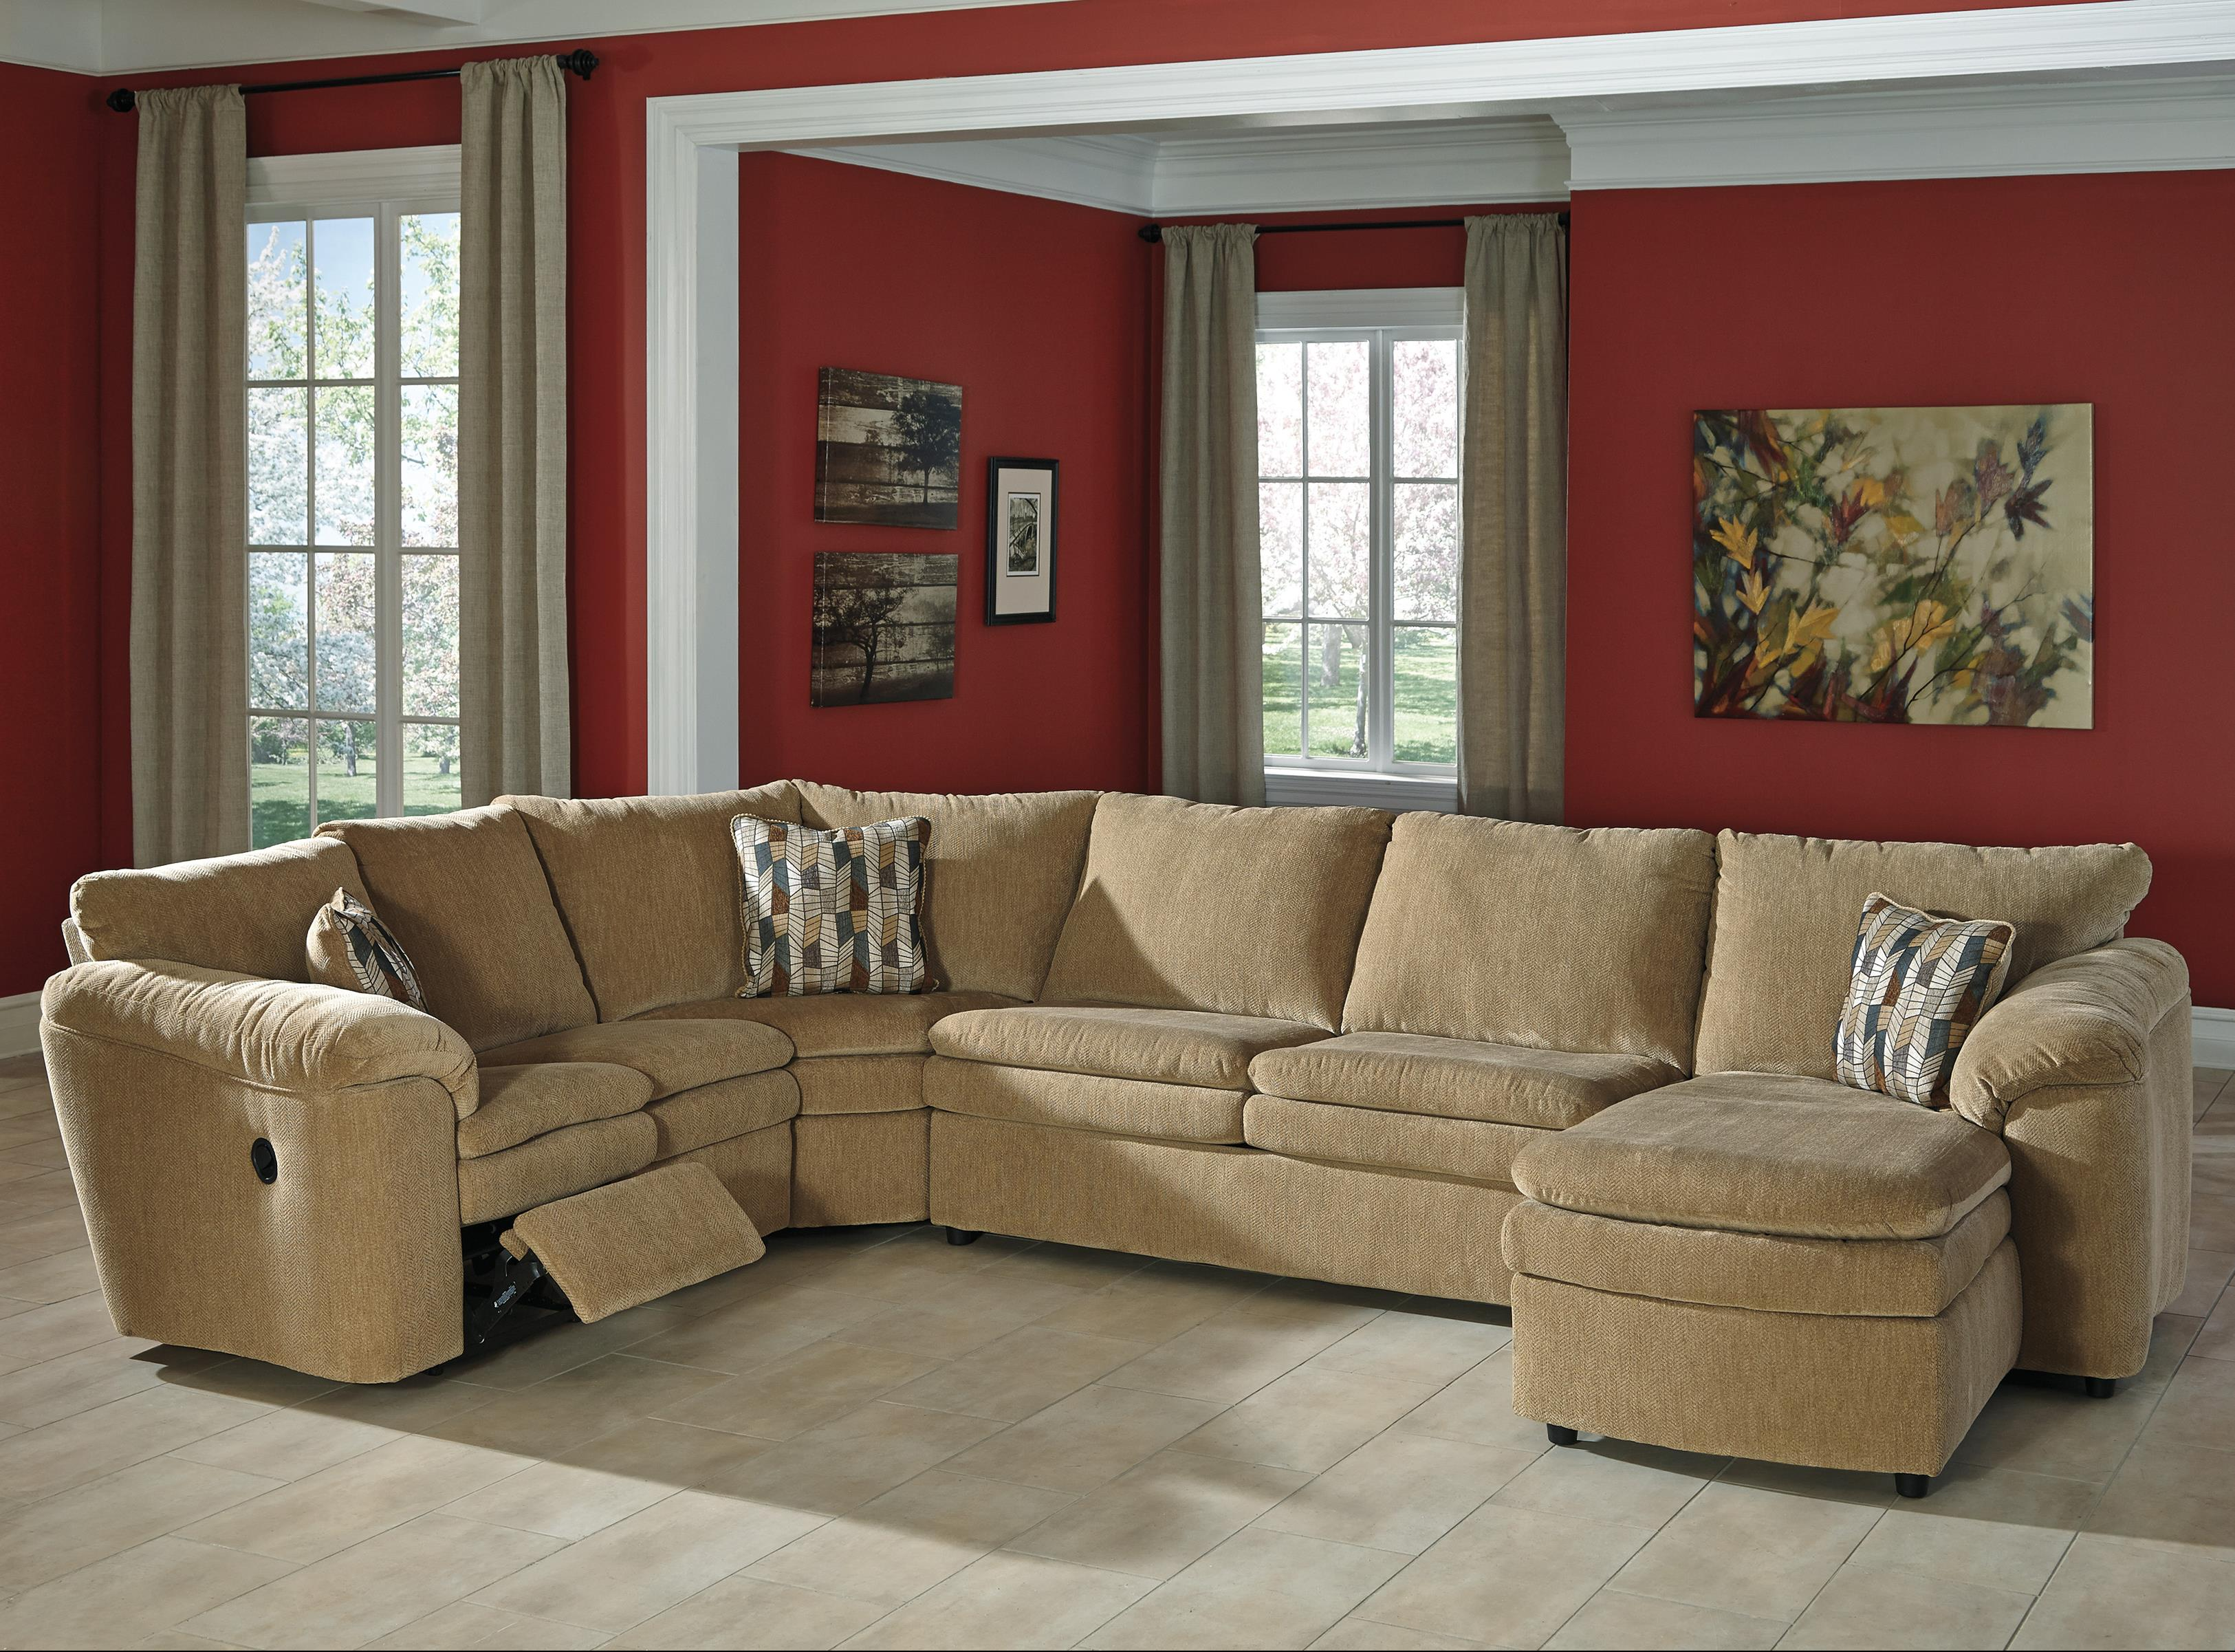 Casual Contemporary 4 Piece Reclining Sectional with Right